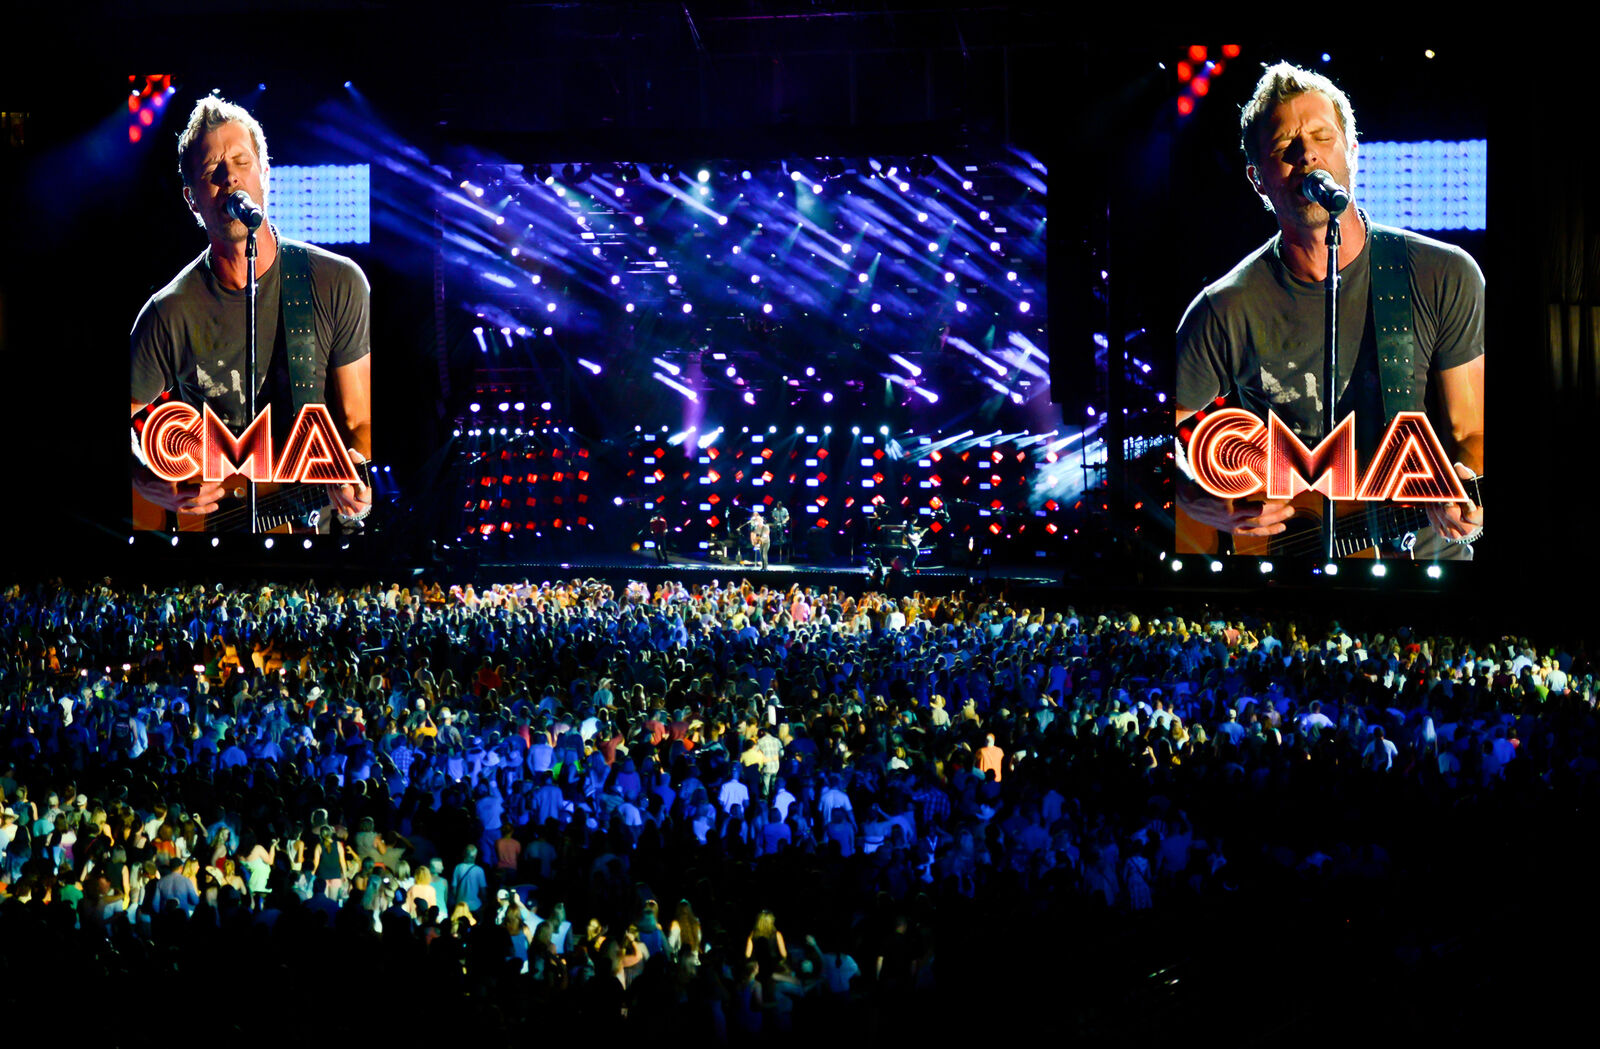 where is the cma fest 2020